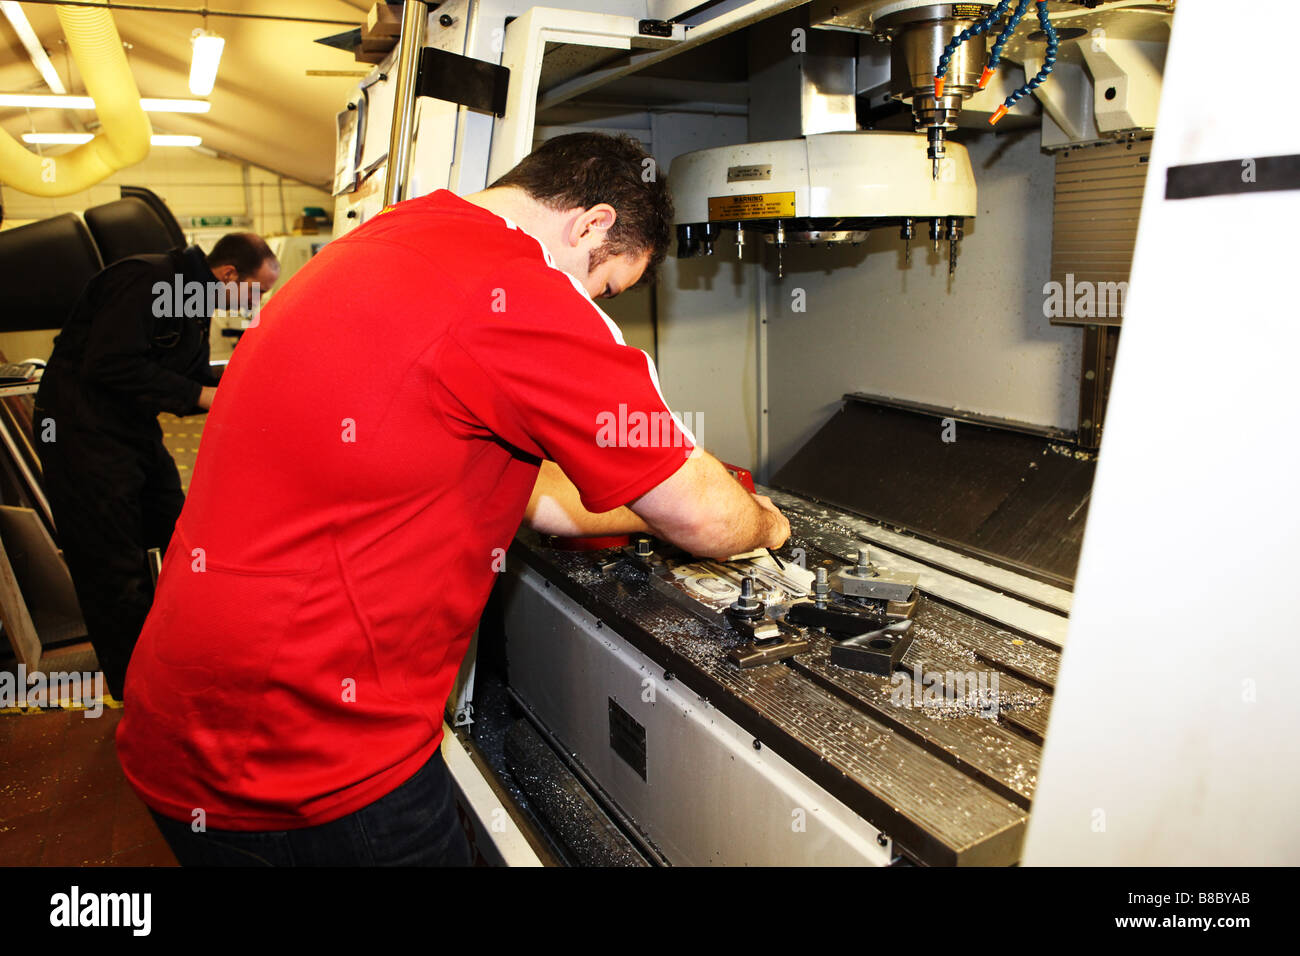 Skilled Workers Machine Operators Using A Precision Metal Working Lathe To  Produce Parts For Hand Made